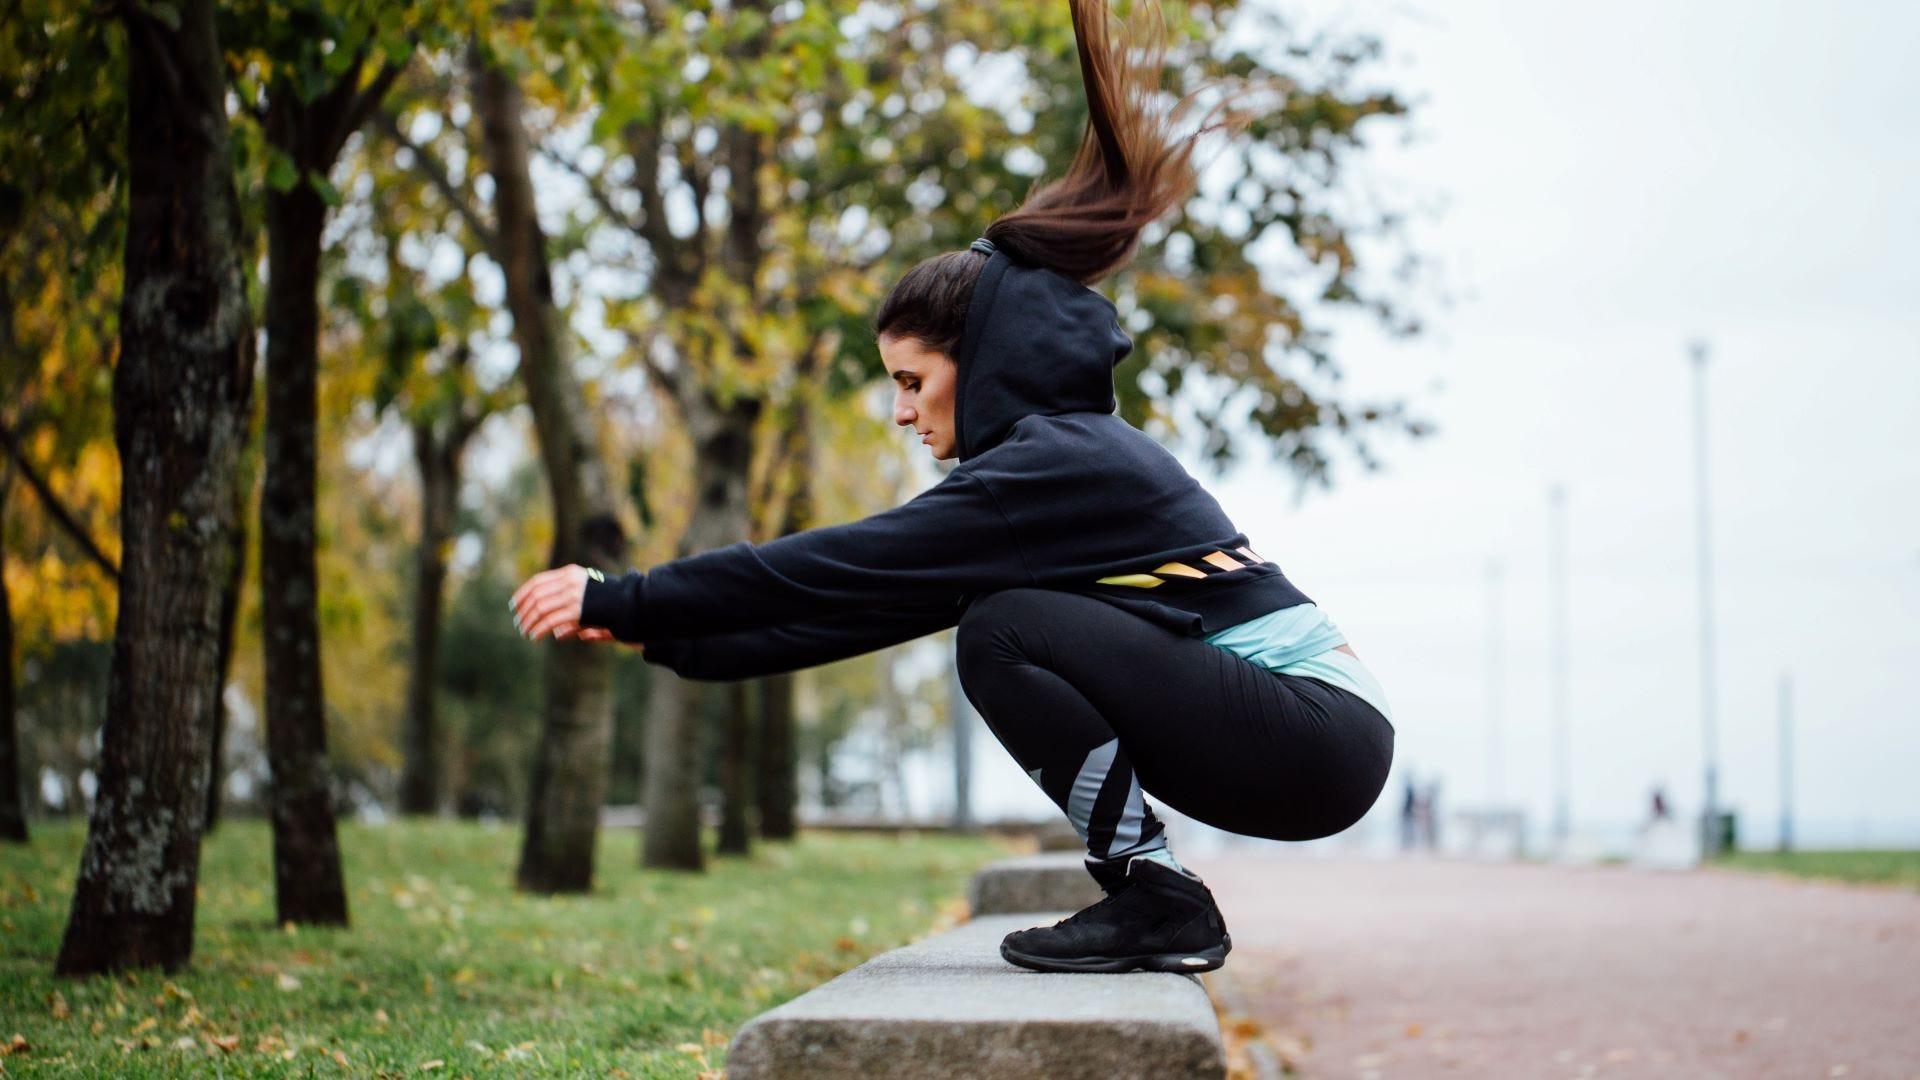 A woman doing a squat on a park bench.